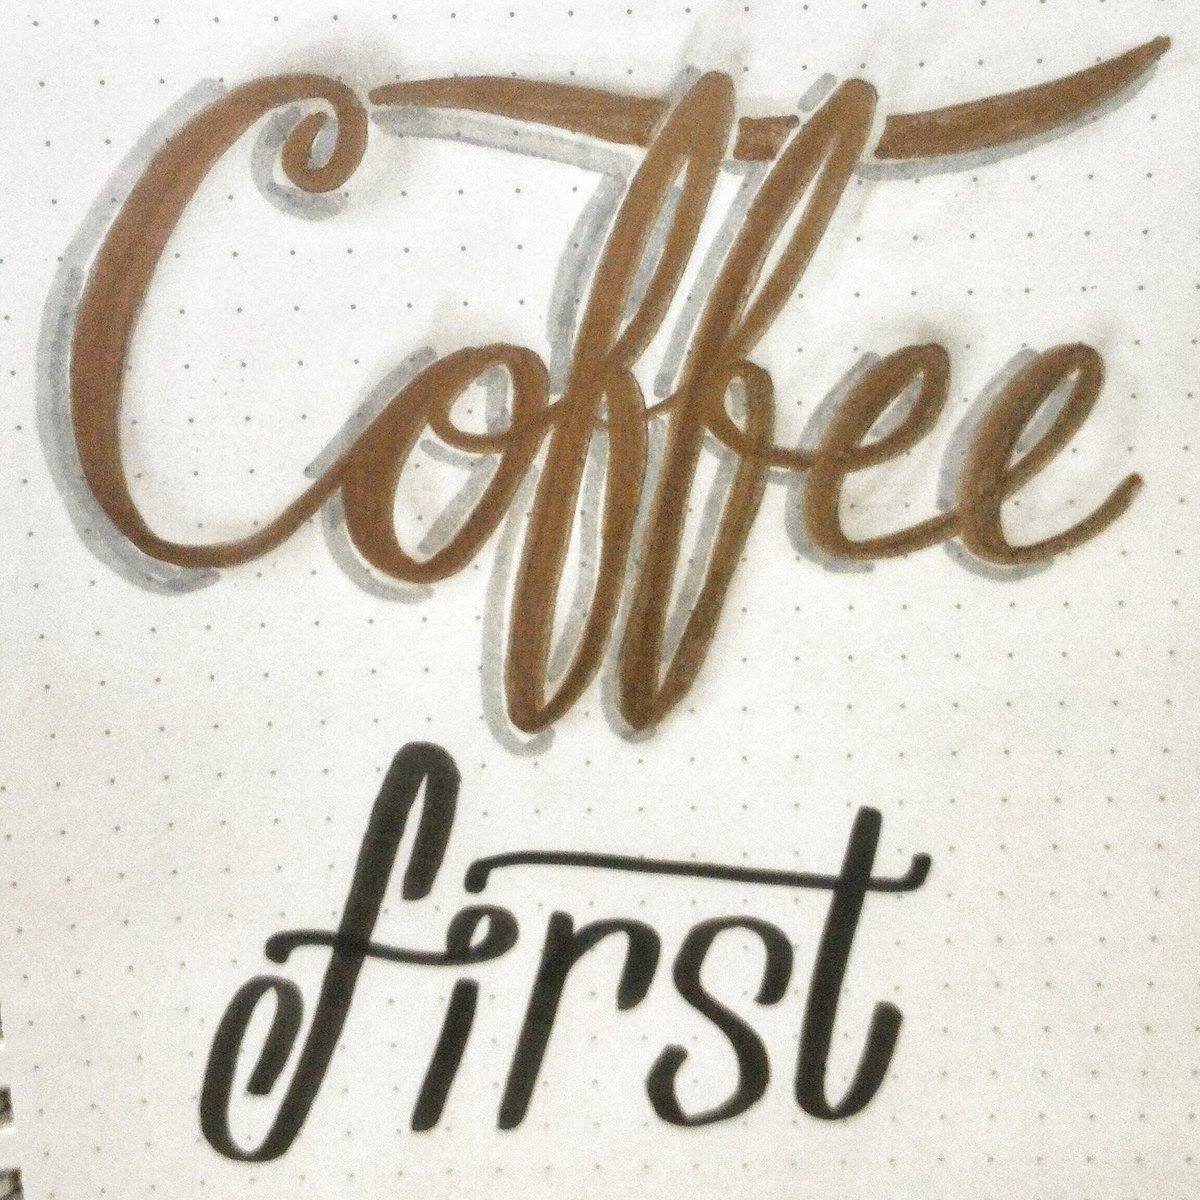 As a hobby I sometimes do Hand lettering. Coffee is always first! https://t.co/HLxjLynFNR